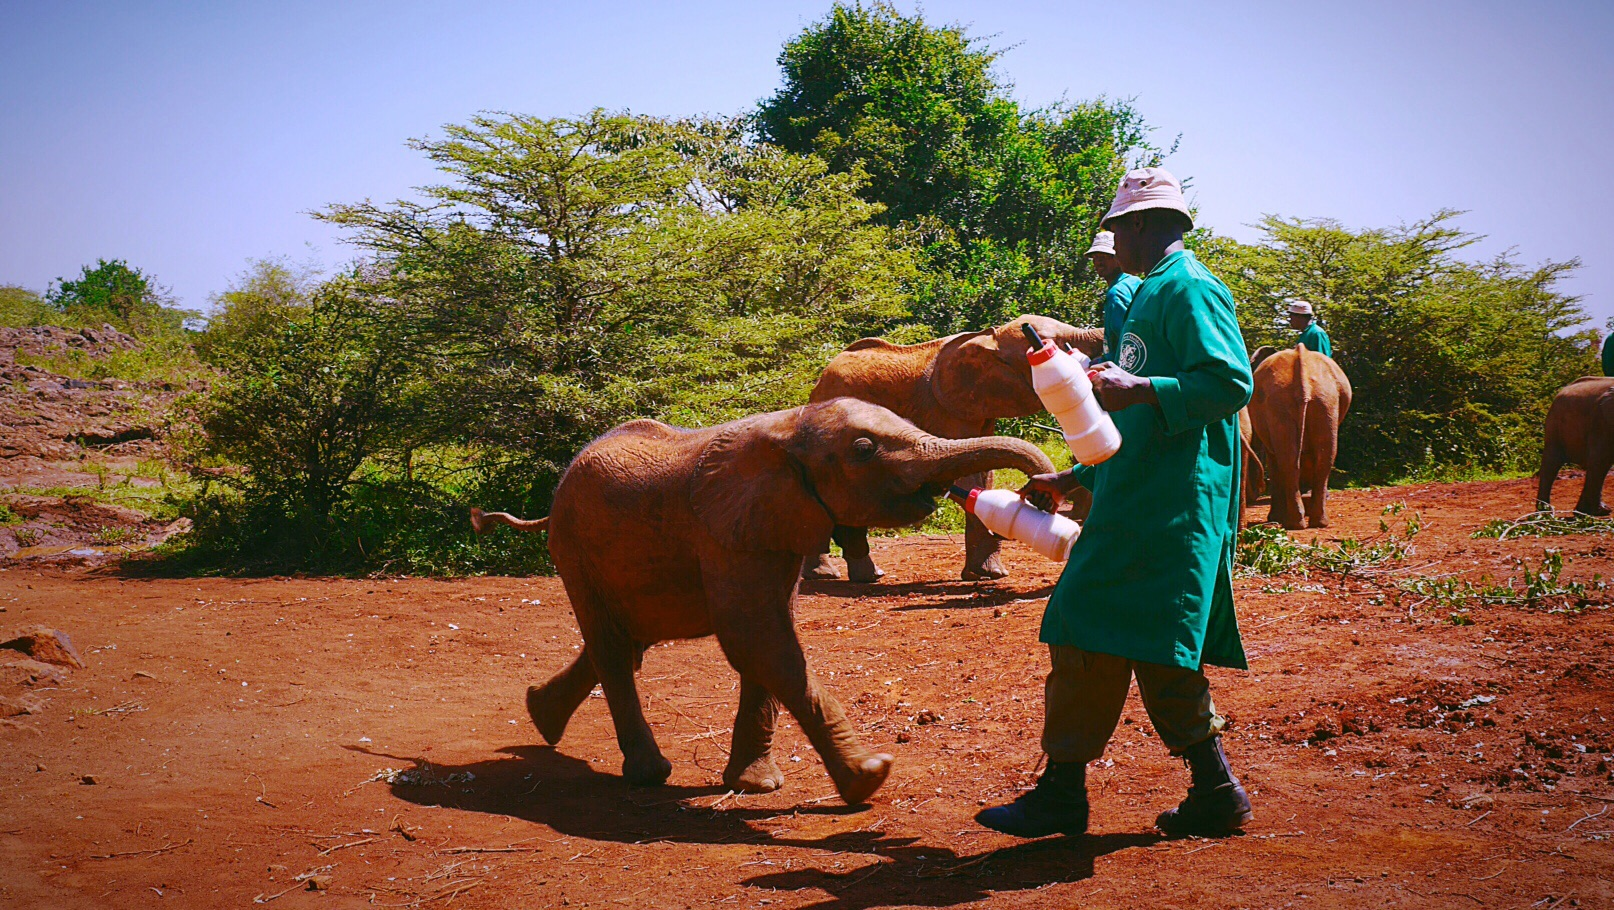 Baby Elephant Feeding at Daphne Sheldrick Elephant and Rhino Orphanage, Nairobi